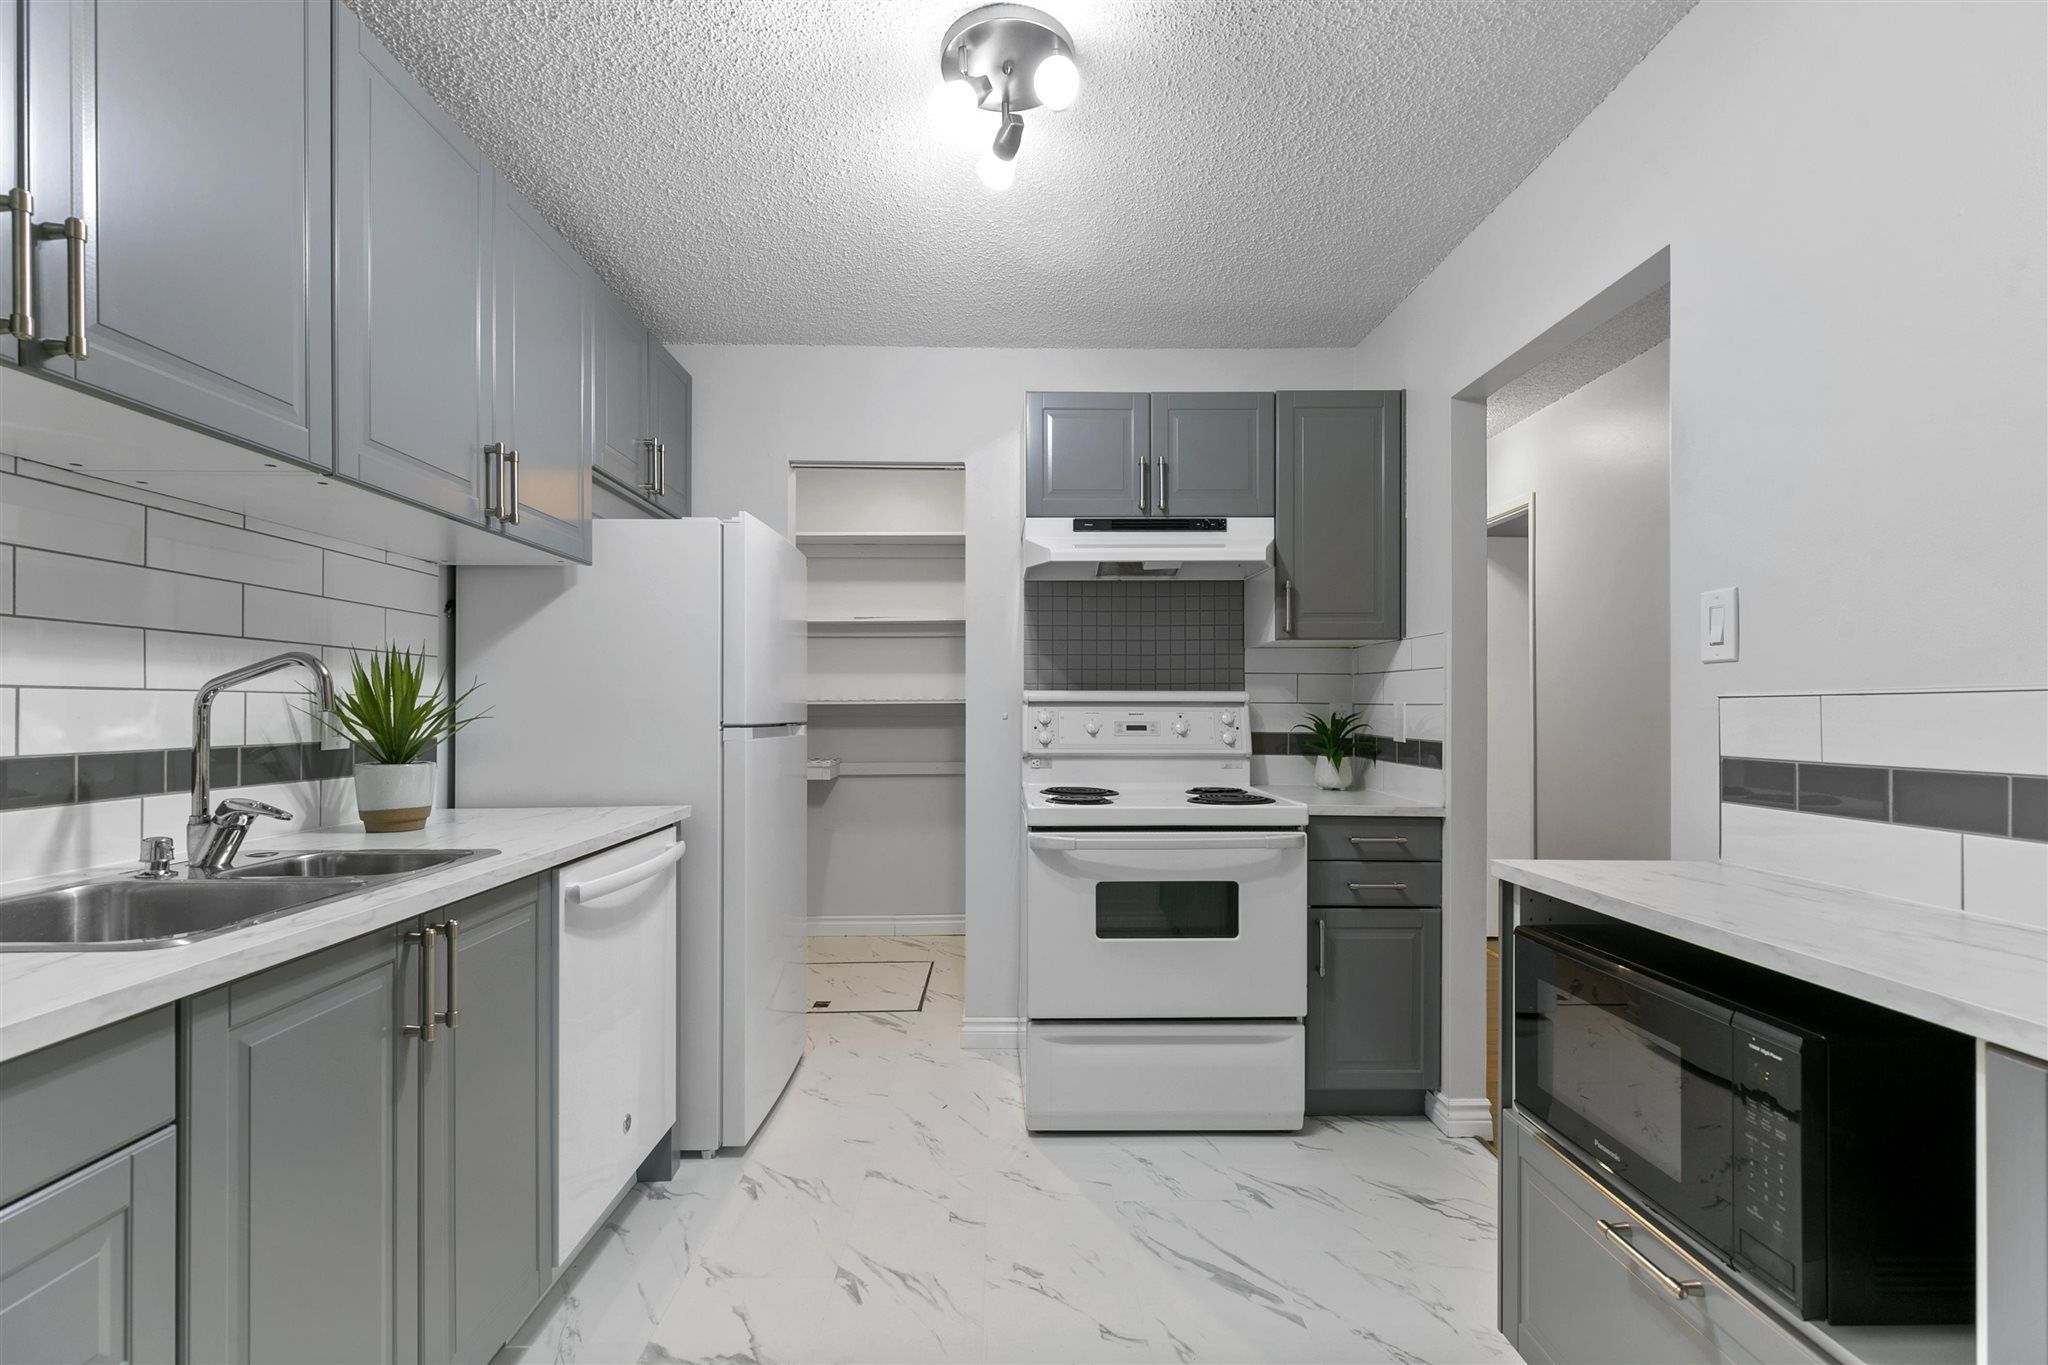 Main Photo: 9235 172 Street in Edmonton: Zone 20 Carriage for sale : MLS®# E4251853